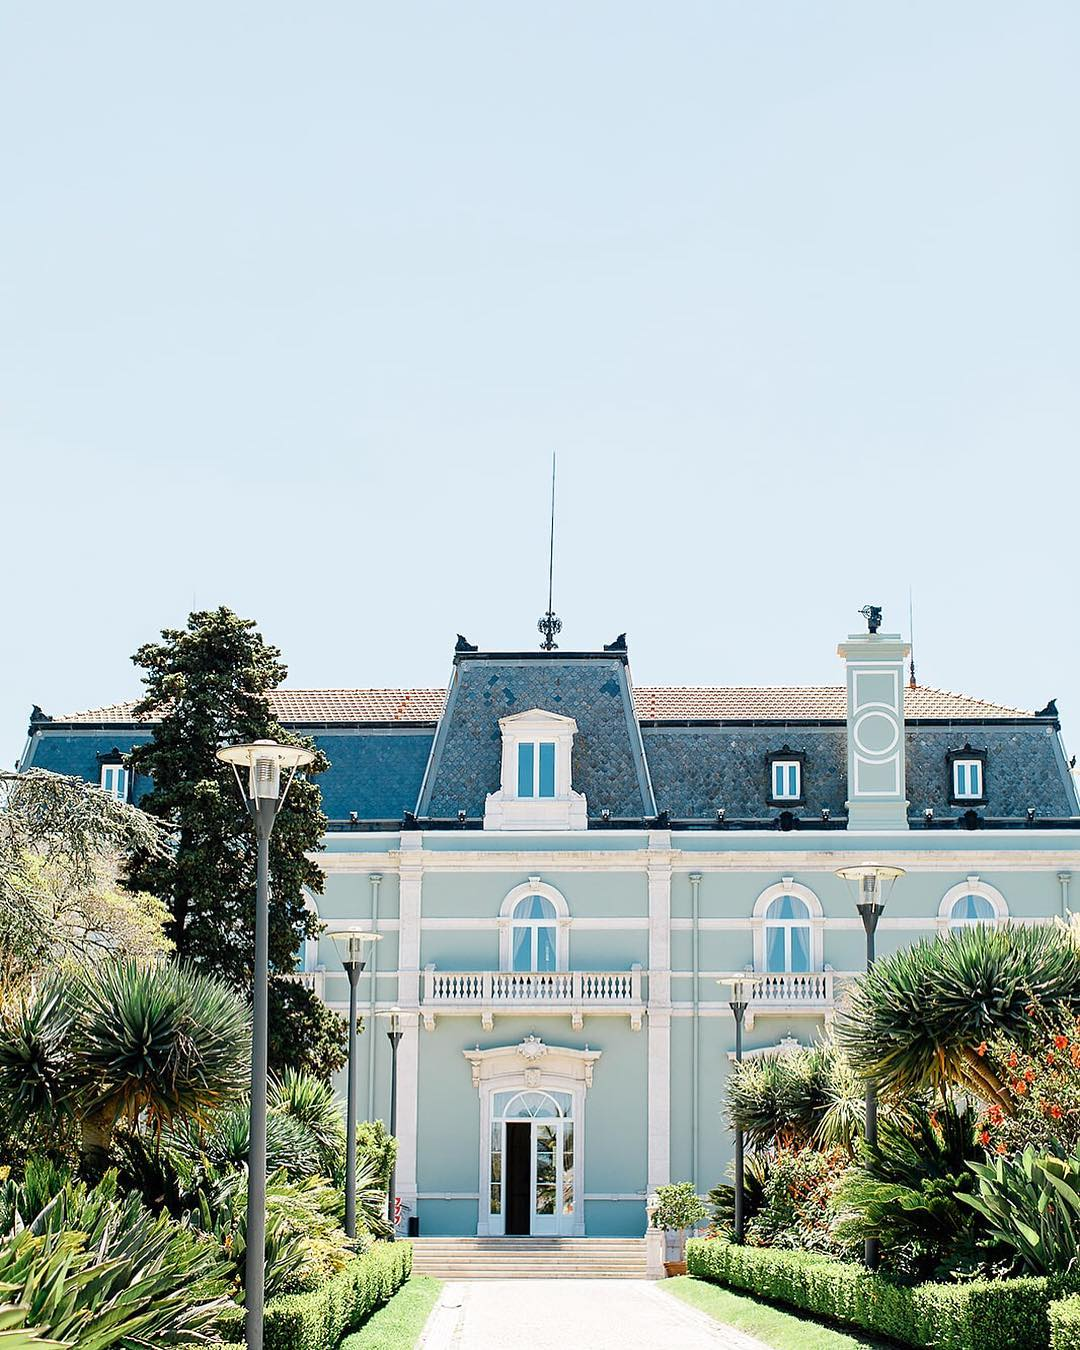 Pestana Palace is a dream venue.This facade goes so well ...